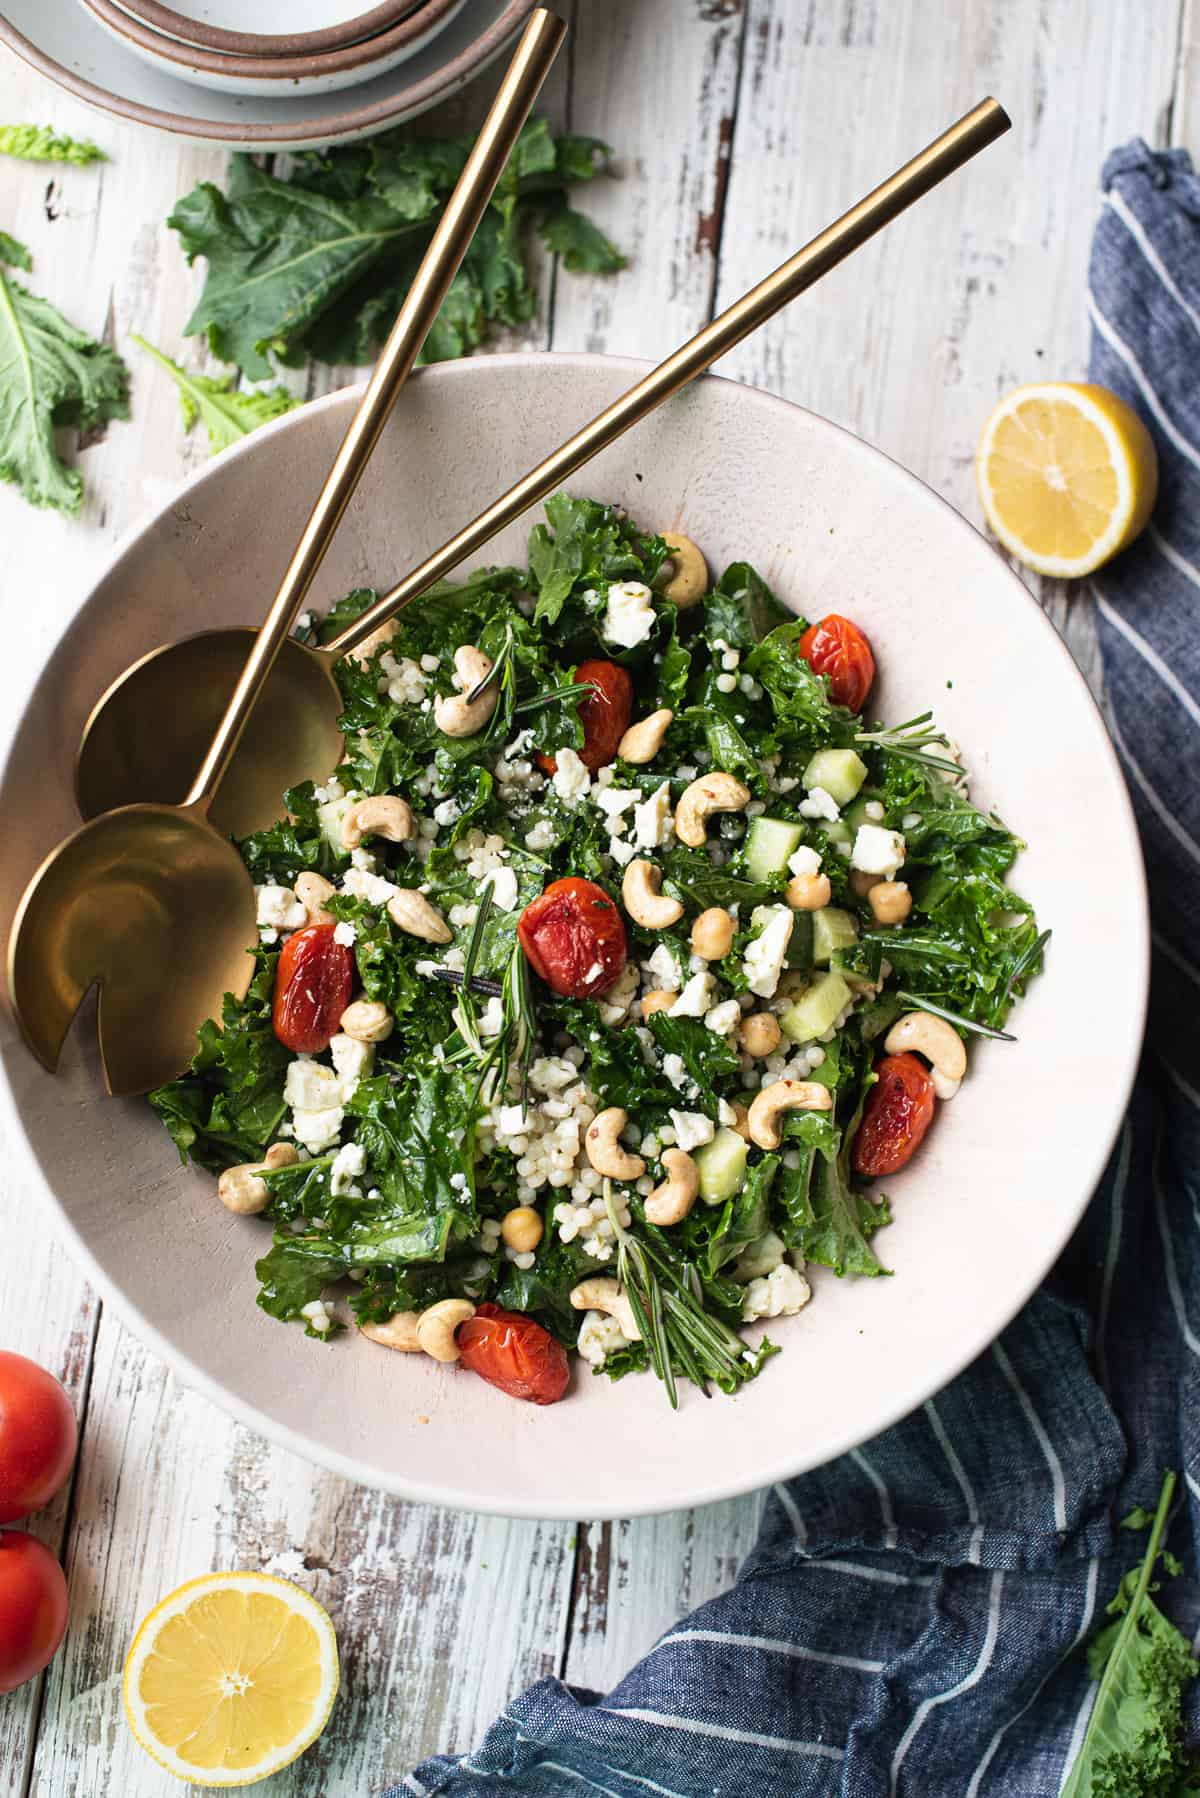 kale salad in wooden bowl with serving spoons & blue striped napkin